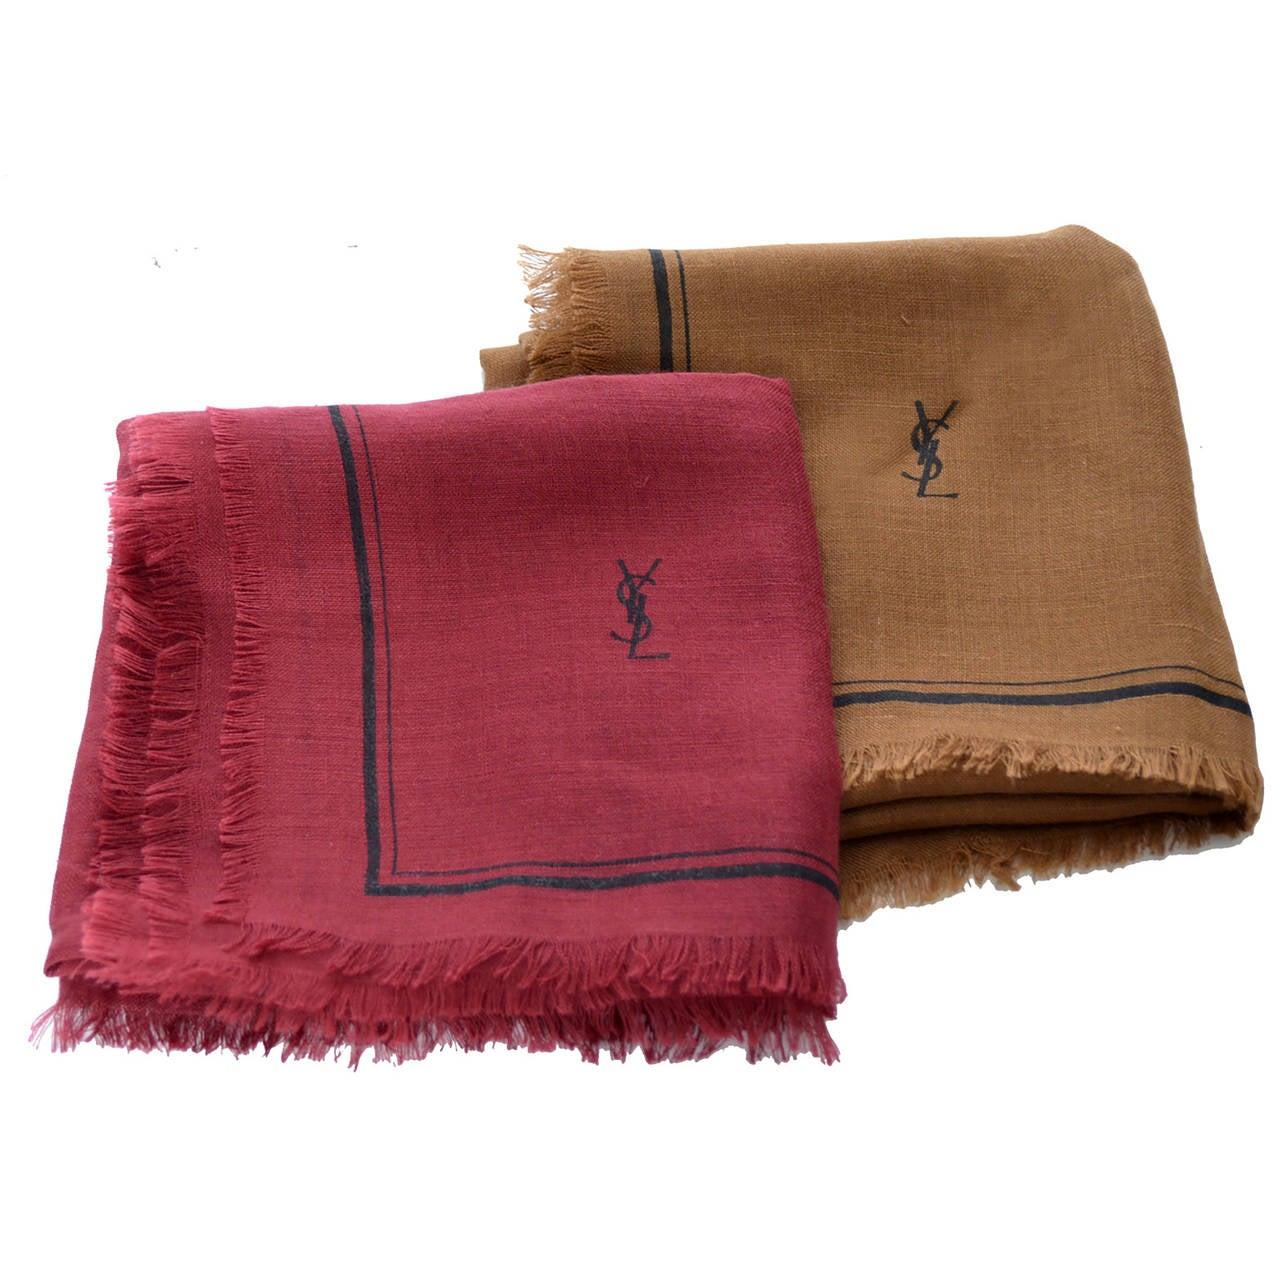 New Yves Saint Laurent 2 Vintage YSL Cashmere Silk Scarves France For Sale